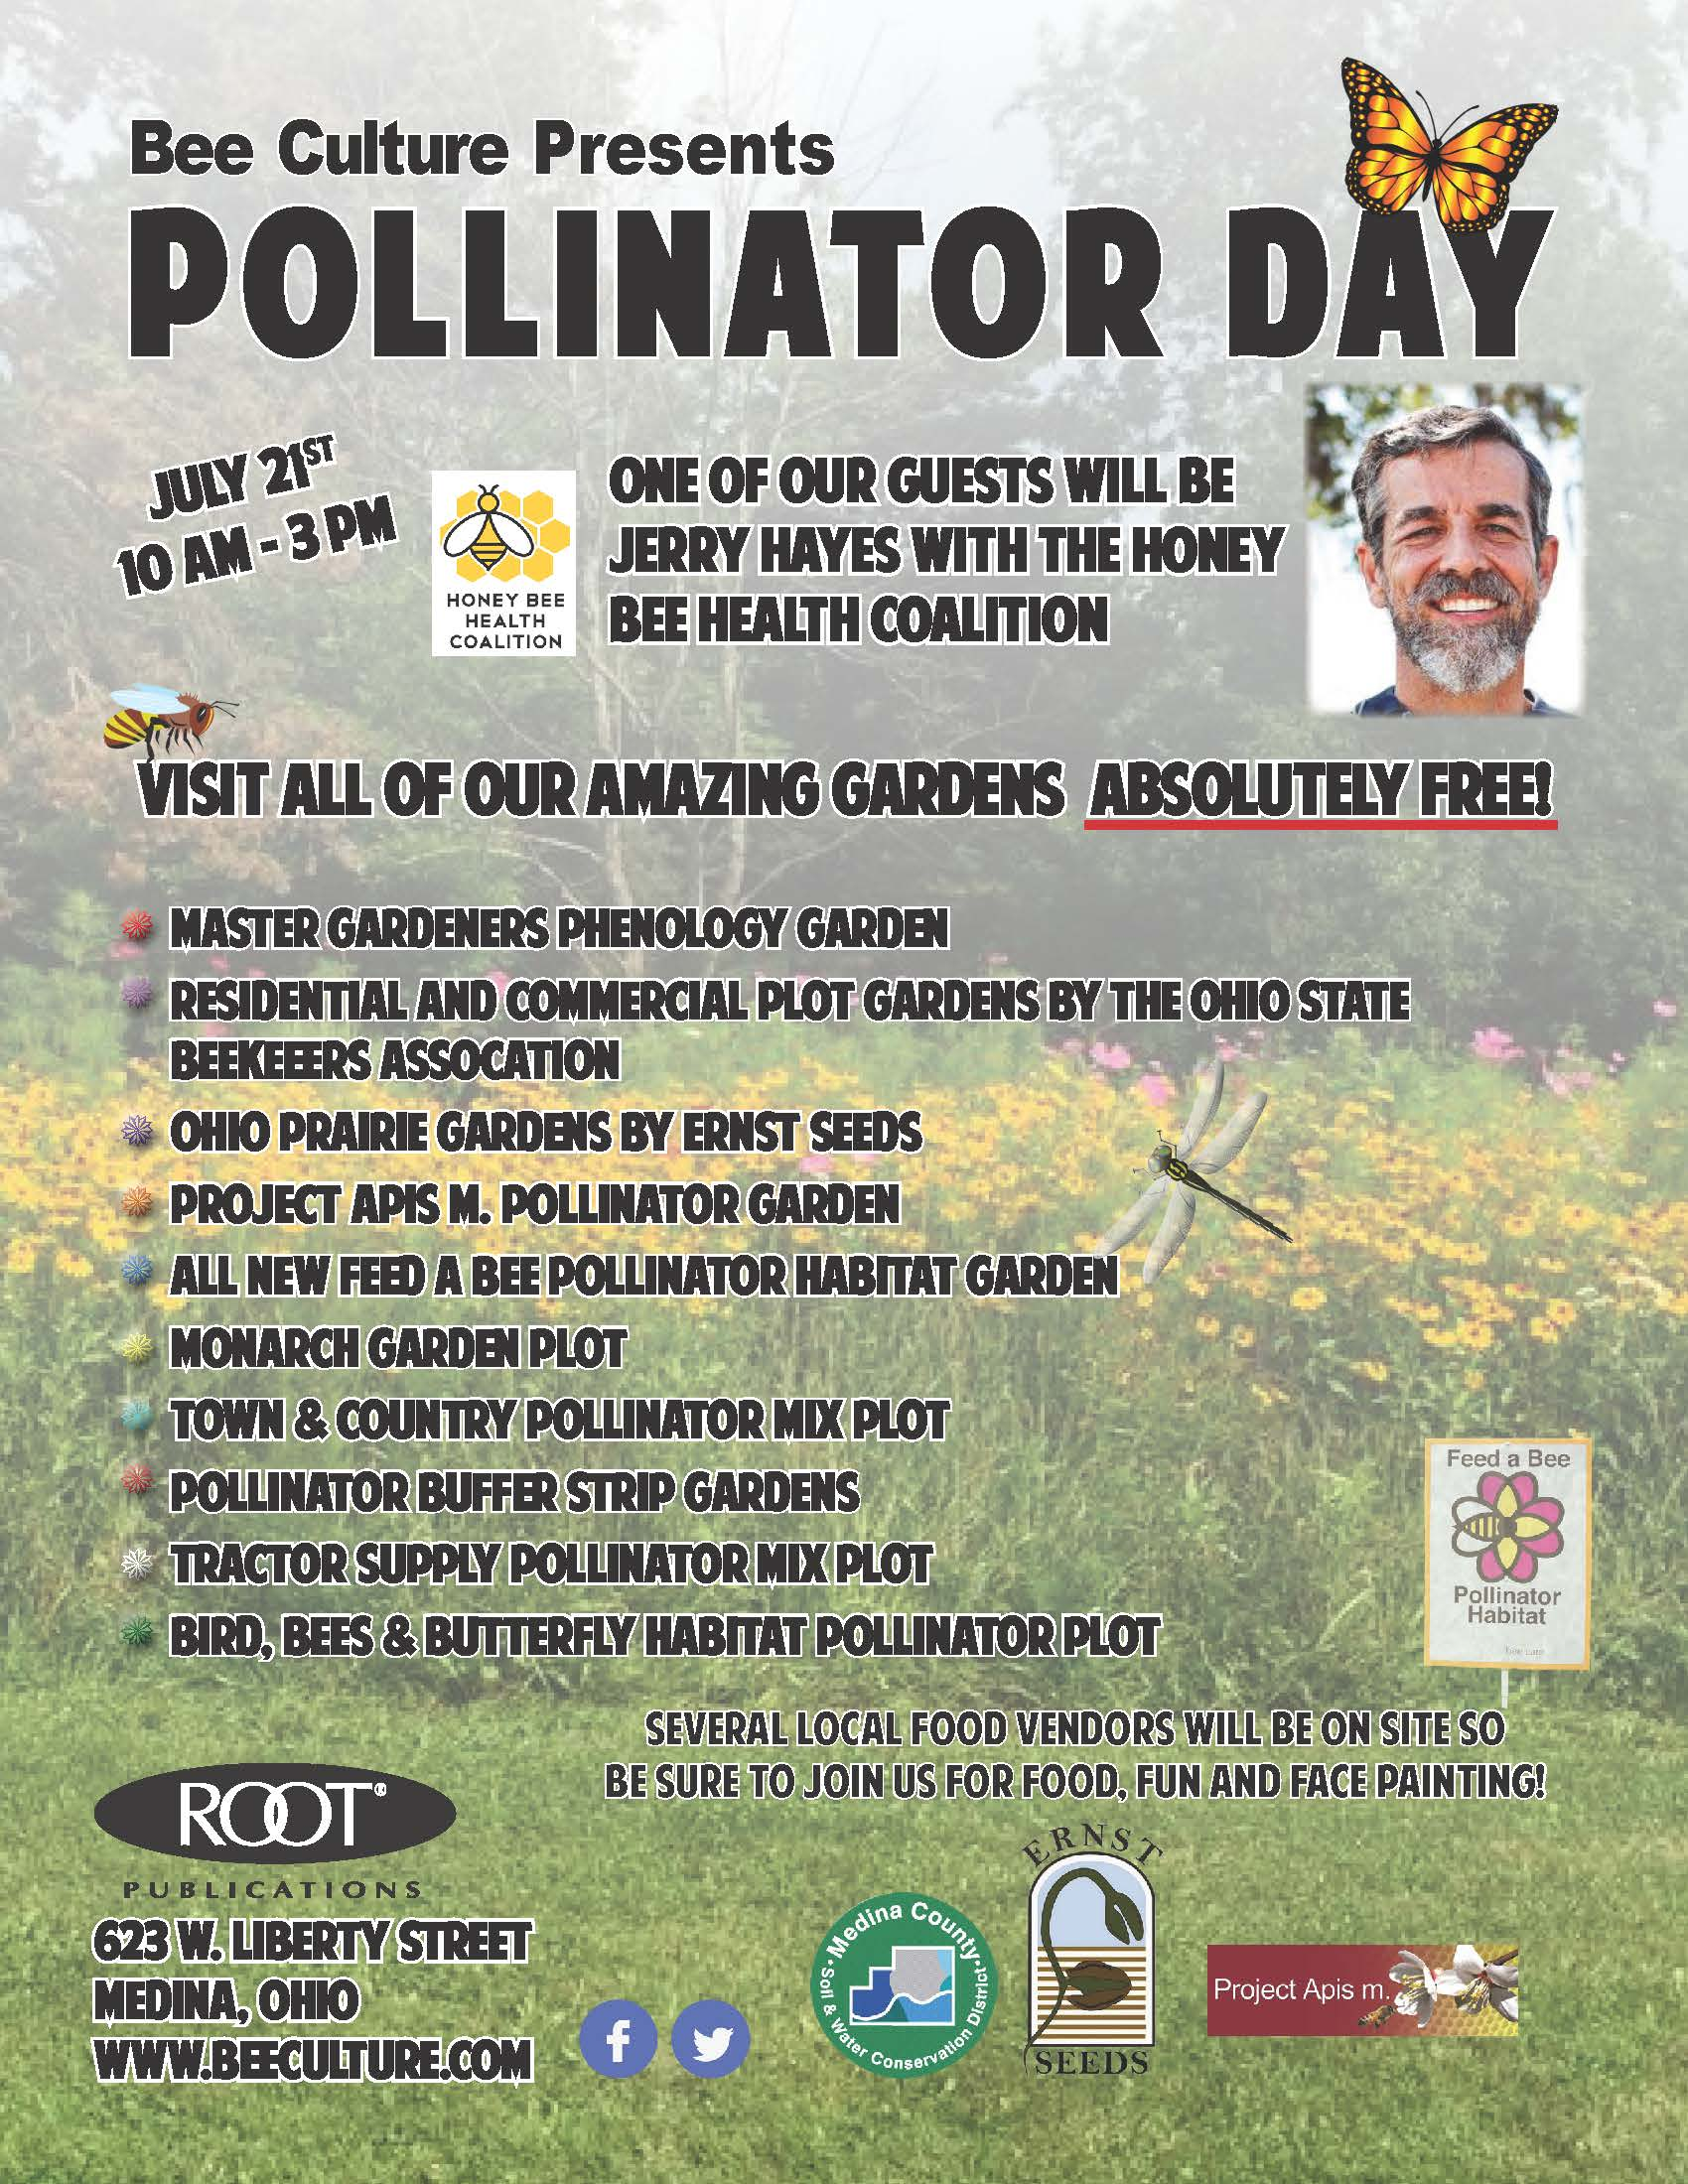 CATCH THE BUZZ – Bee Culture's Pollinator Day – July 21, 2018